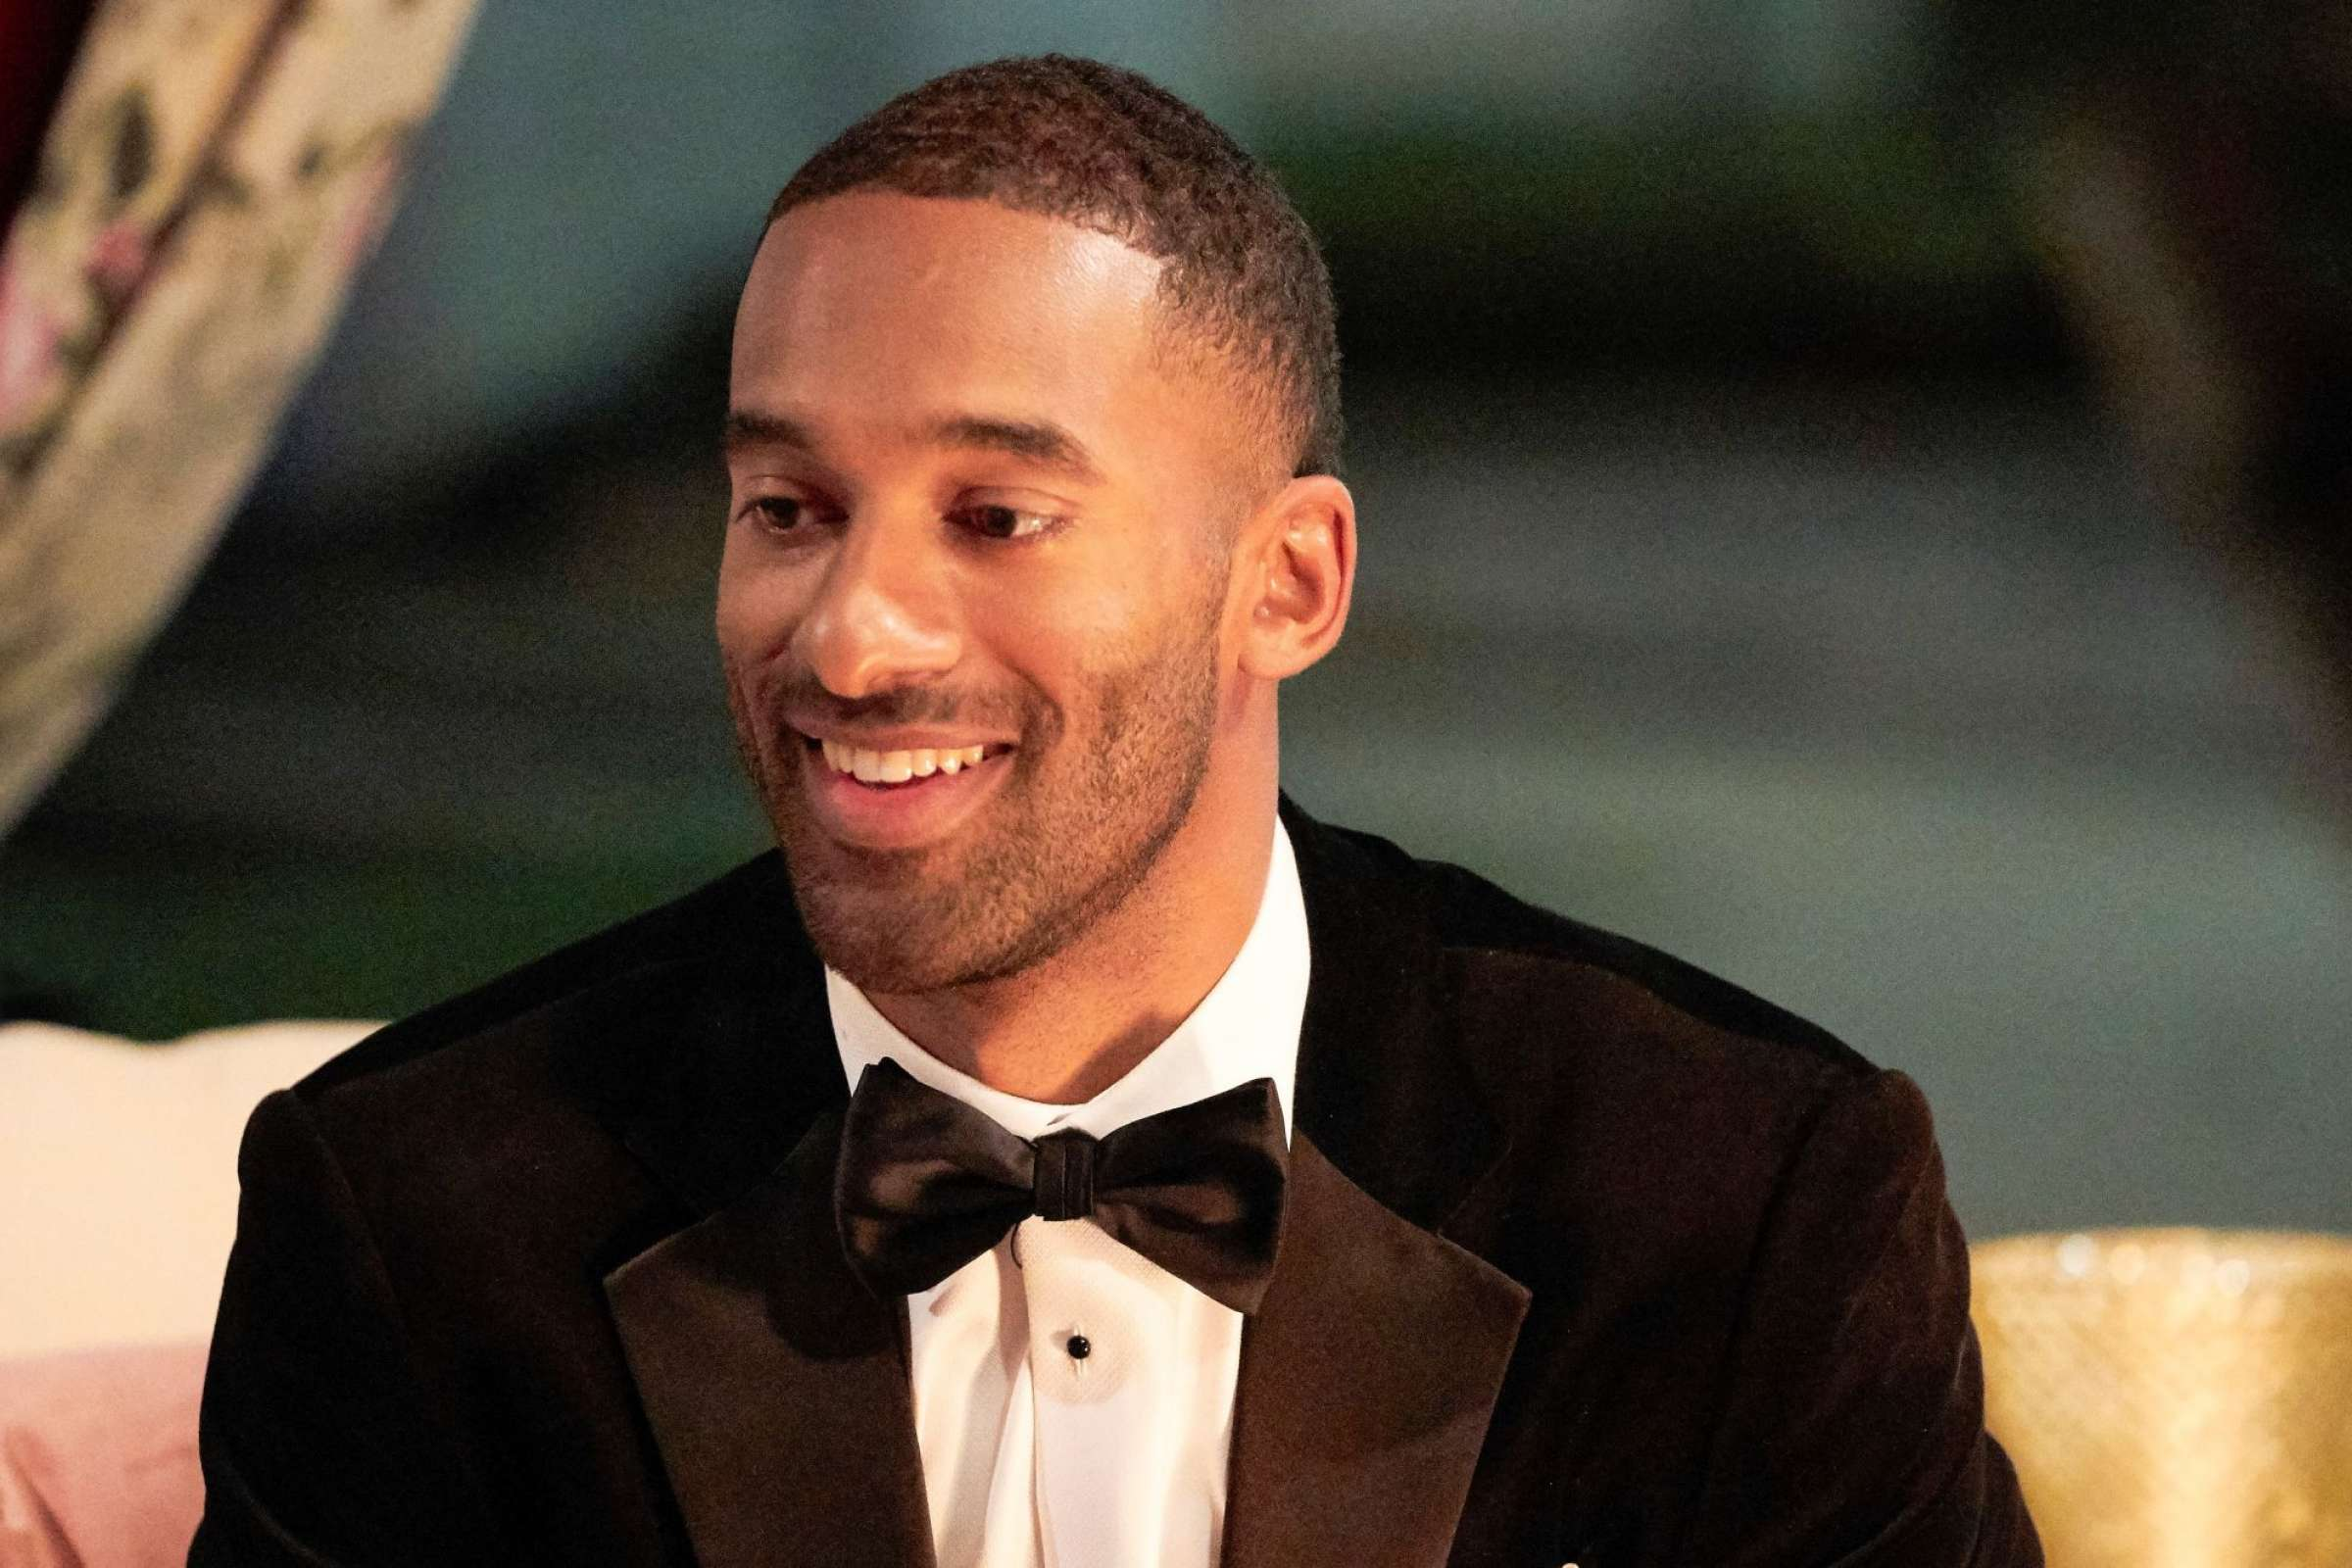 5 Things We Love About Matt James, The First Black Bachelor